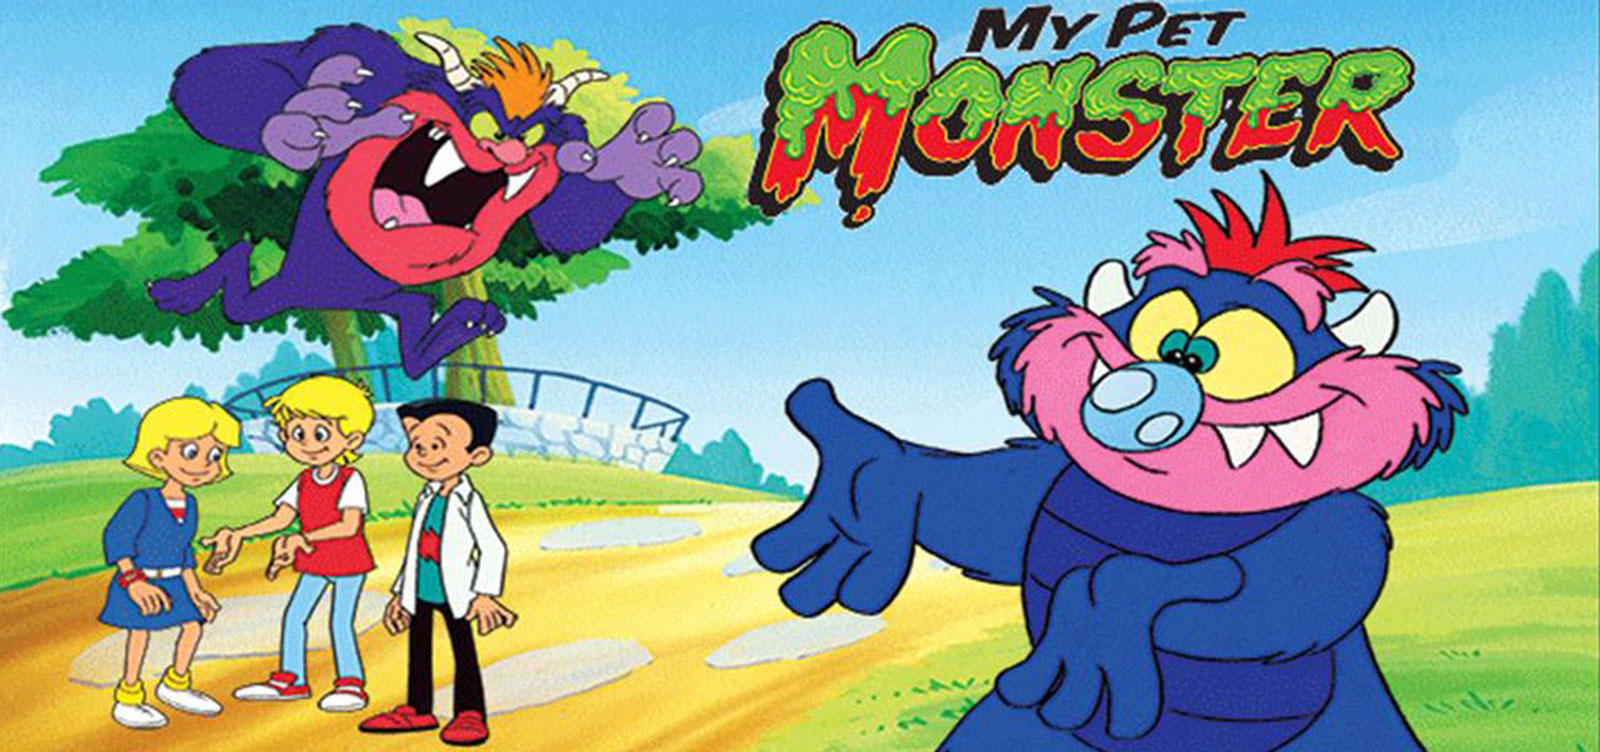 My Pet Monster - Cartoon